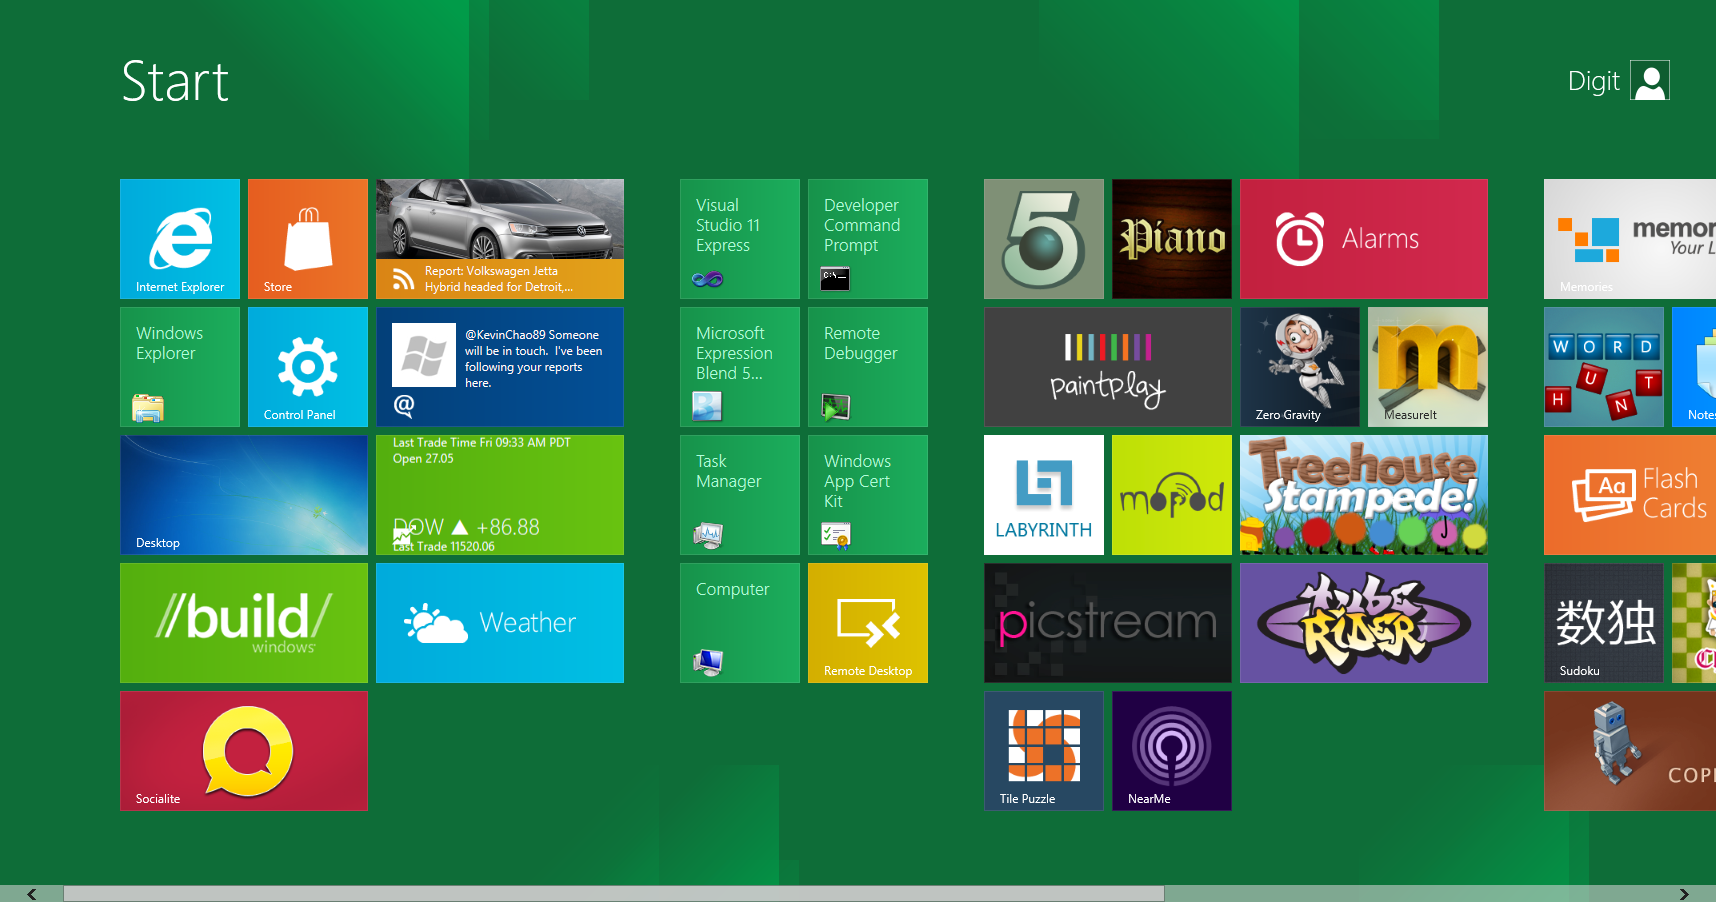 Look at the Windows 8